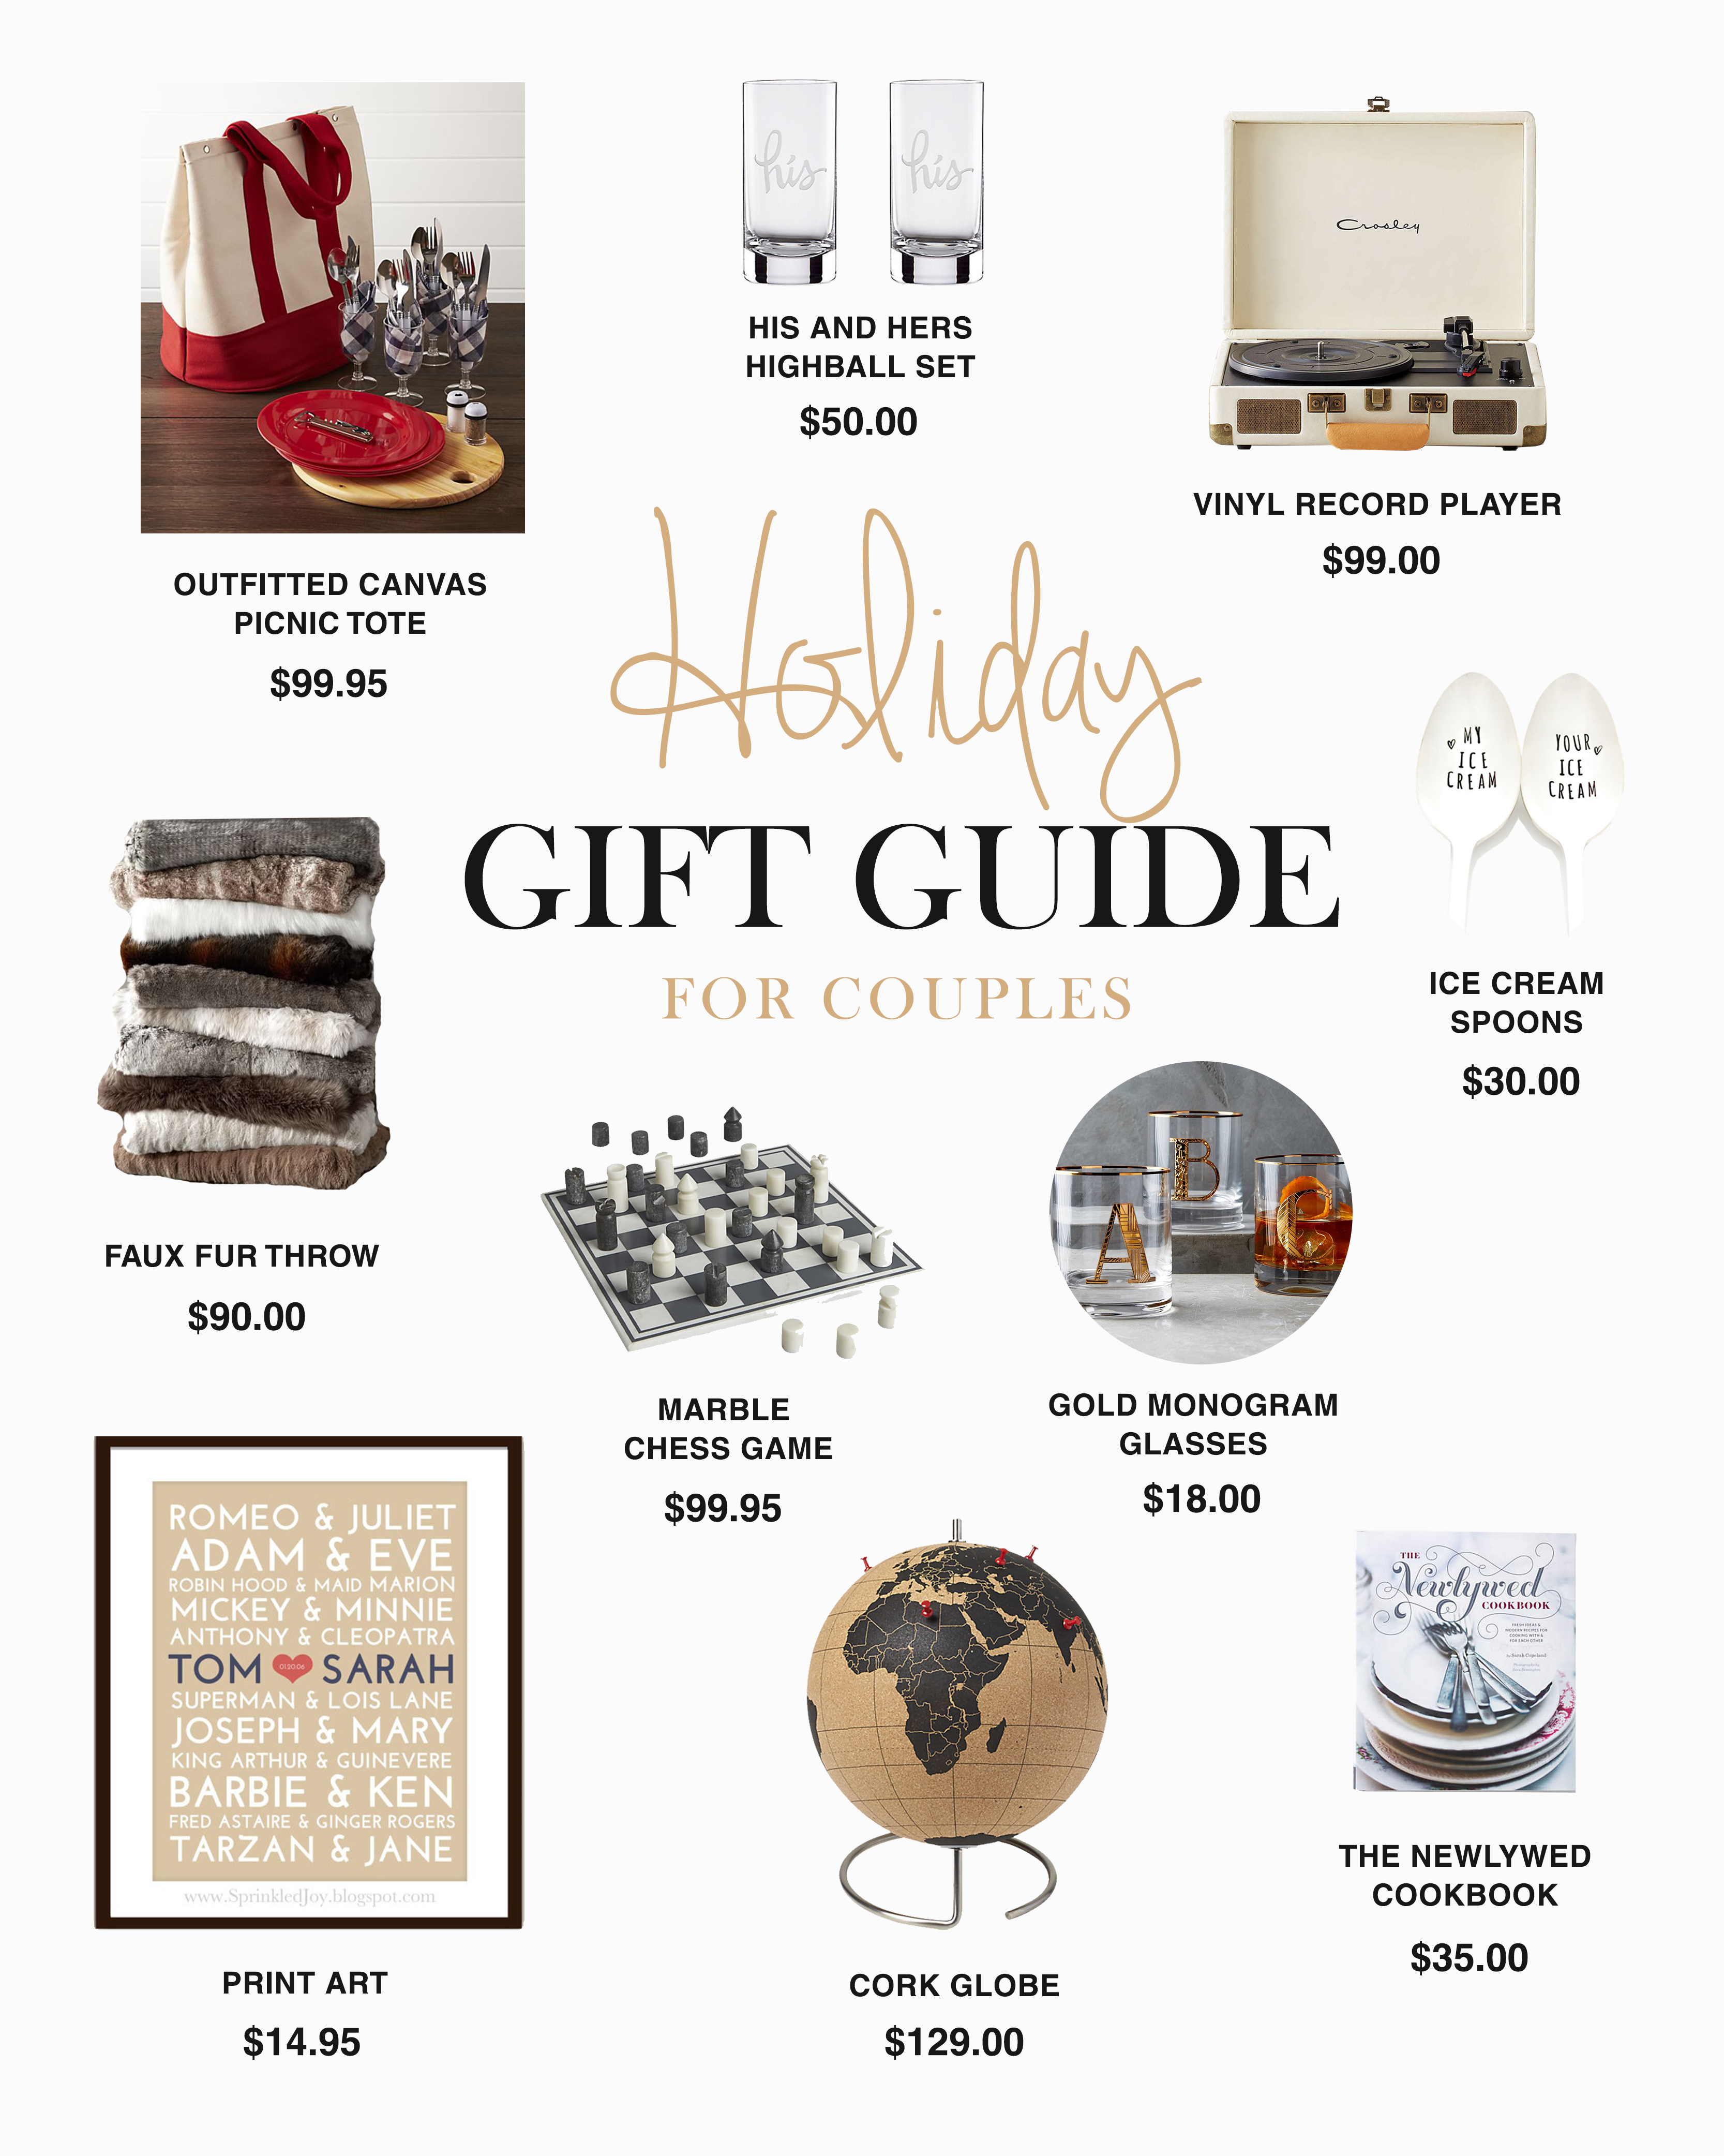 GIFT GUIDE - couples